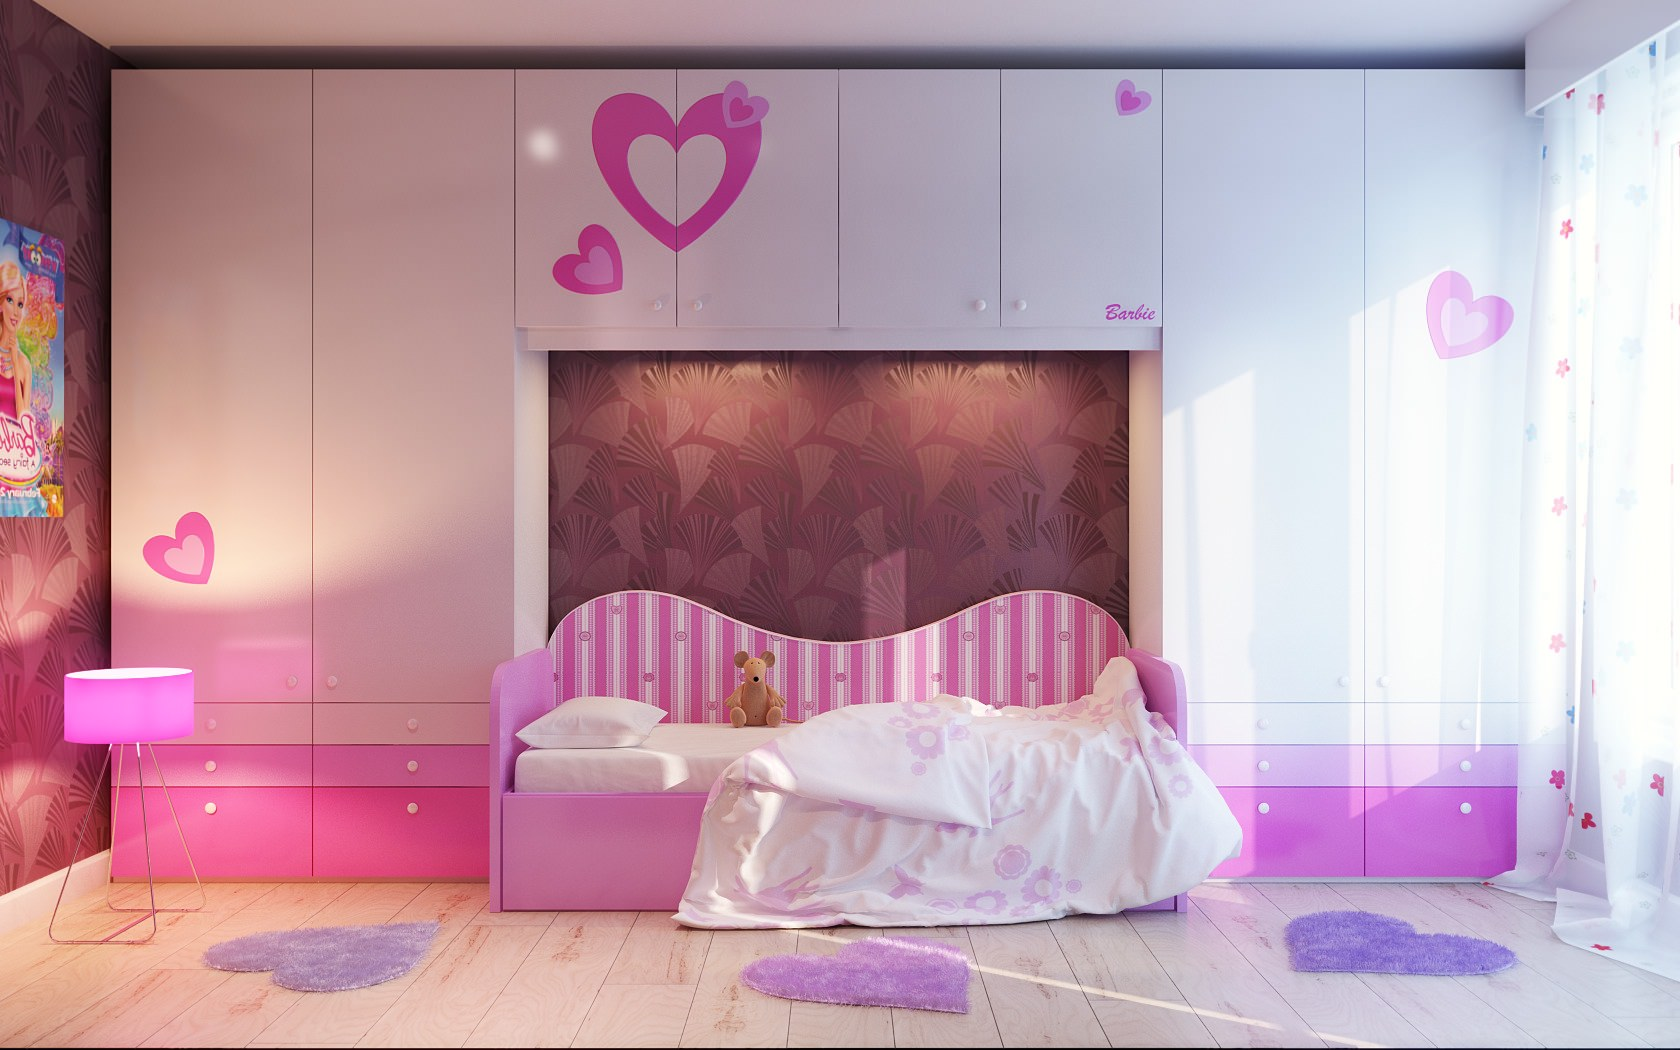 Girly Pink and White Wall Design